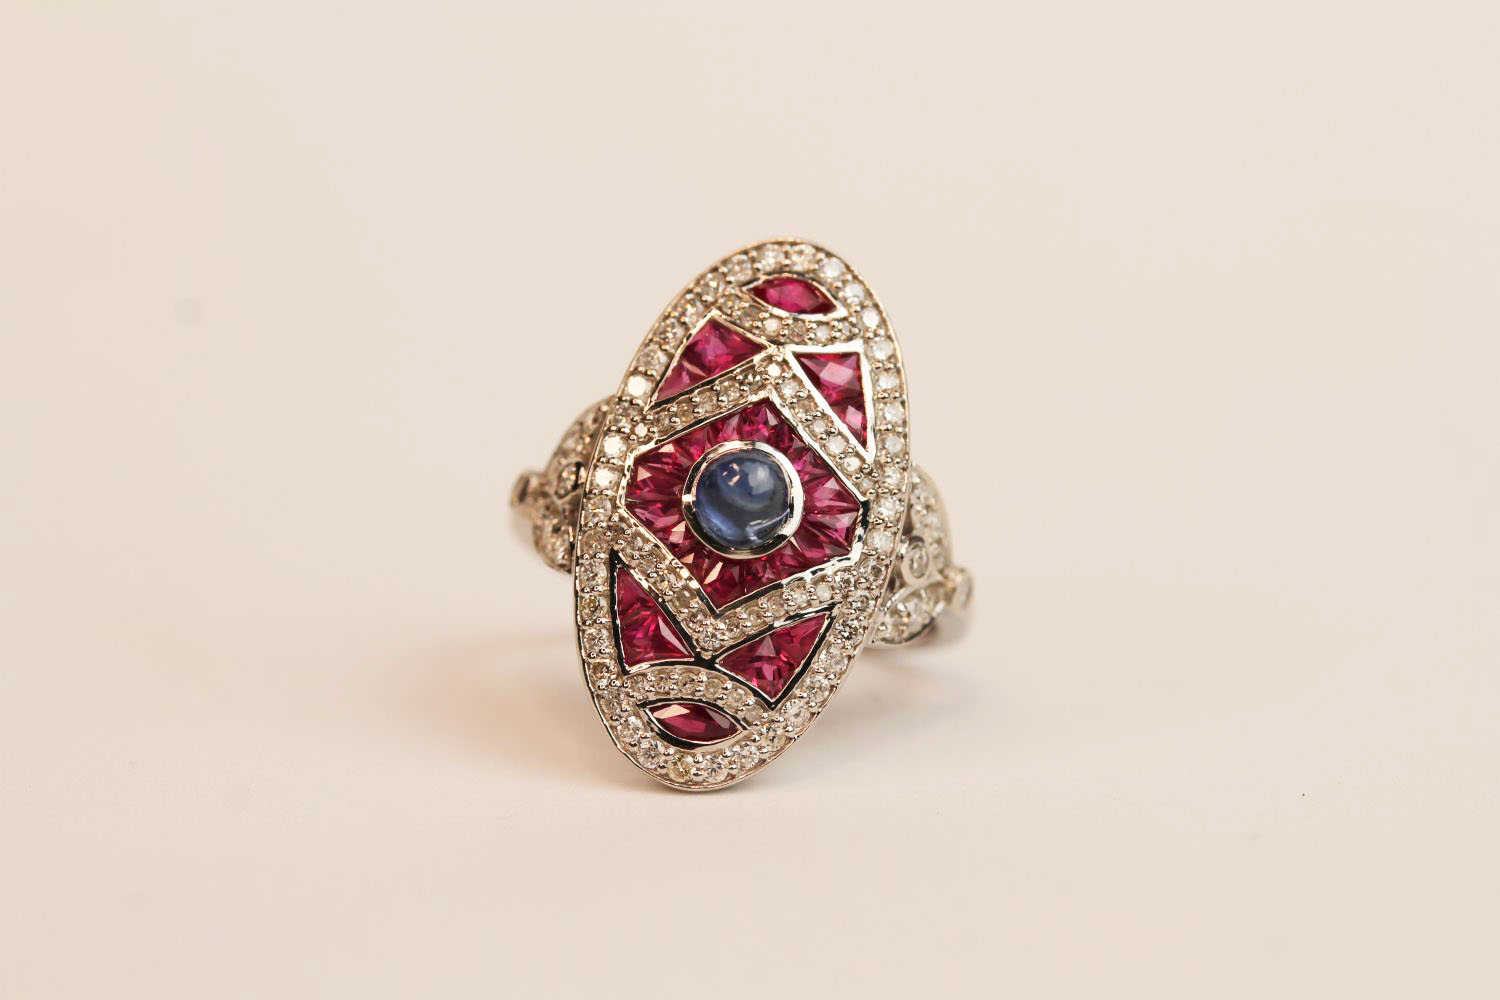 18ct white gold and platinum large Art Deco-style ruby and diamond ring with cabochon sapphire, ring